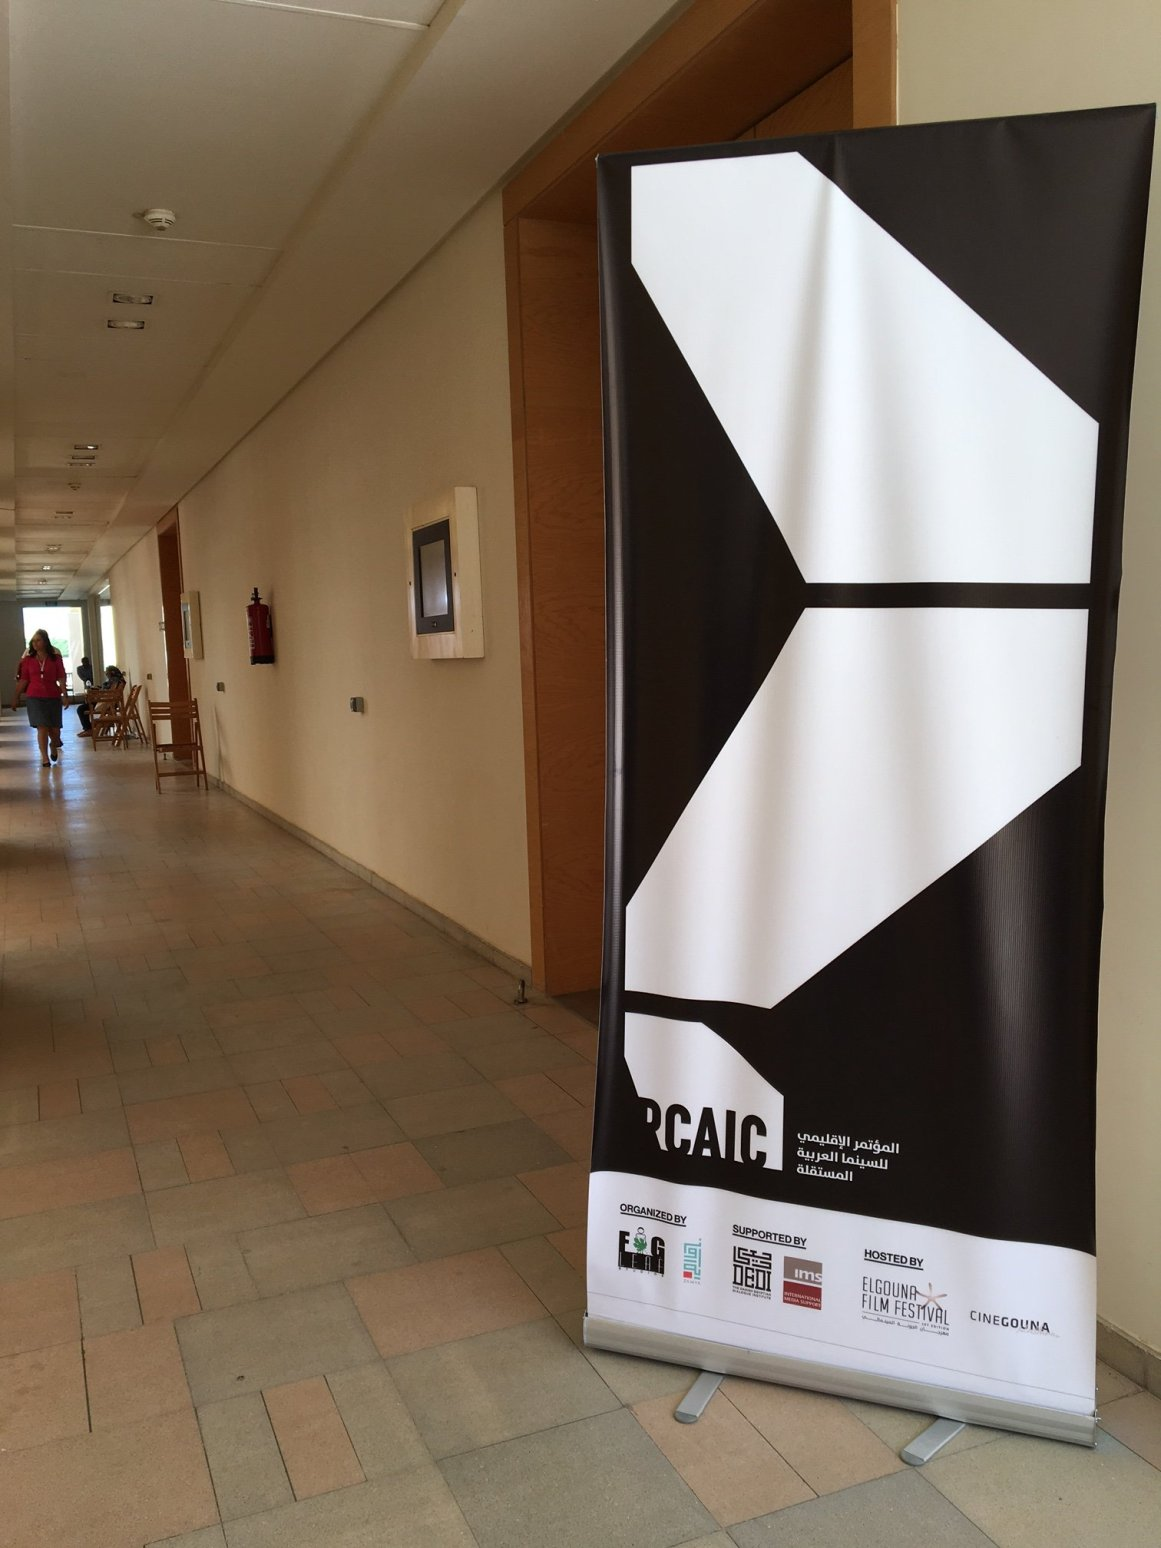 The Regional Conference for Arab Independent Cinema (RCAIC)